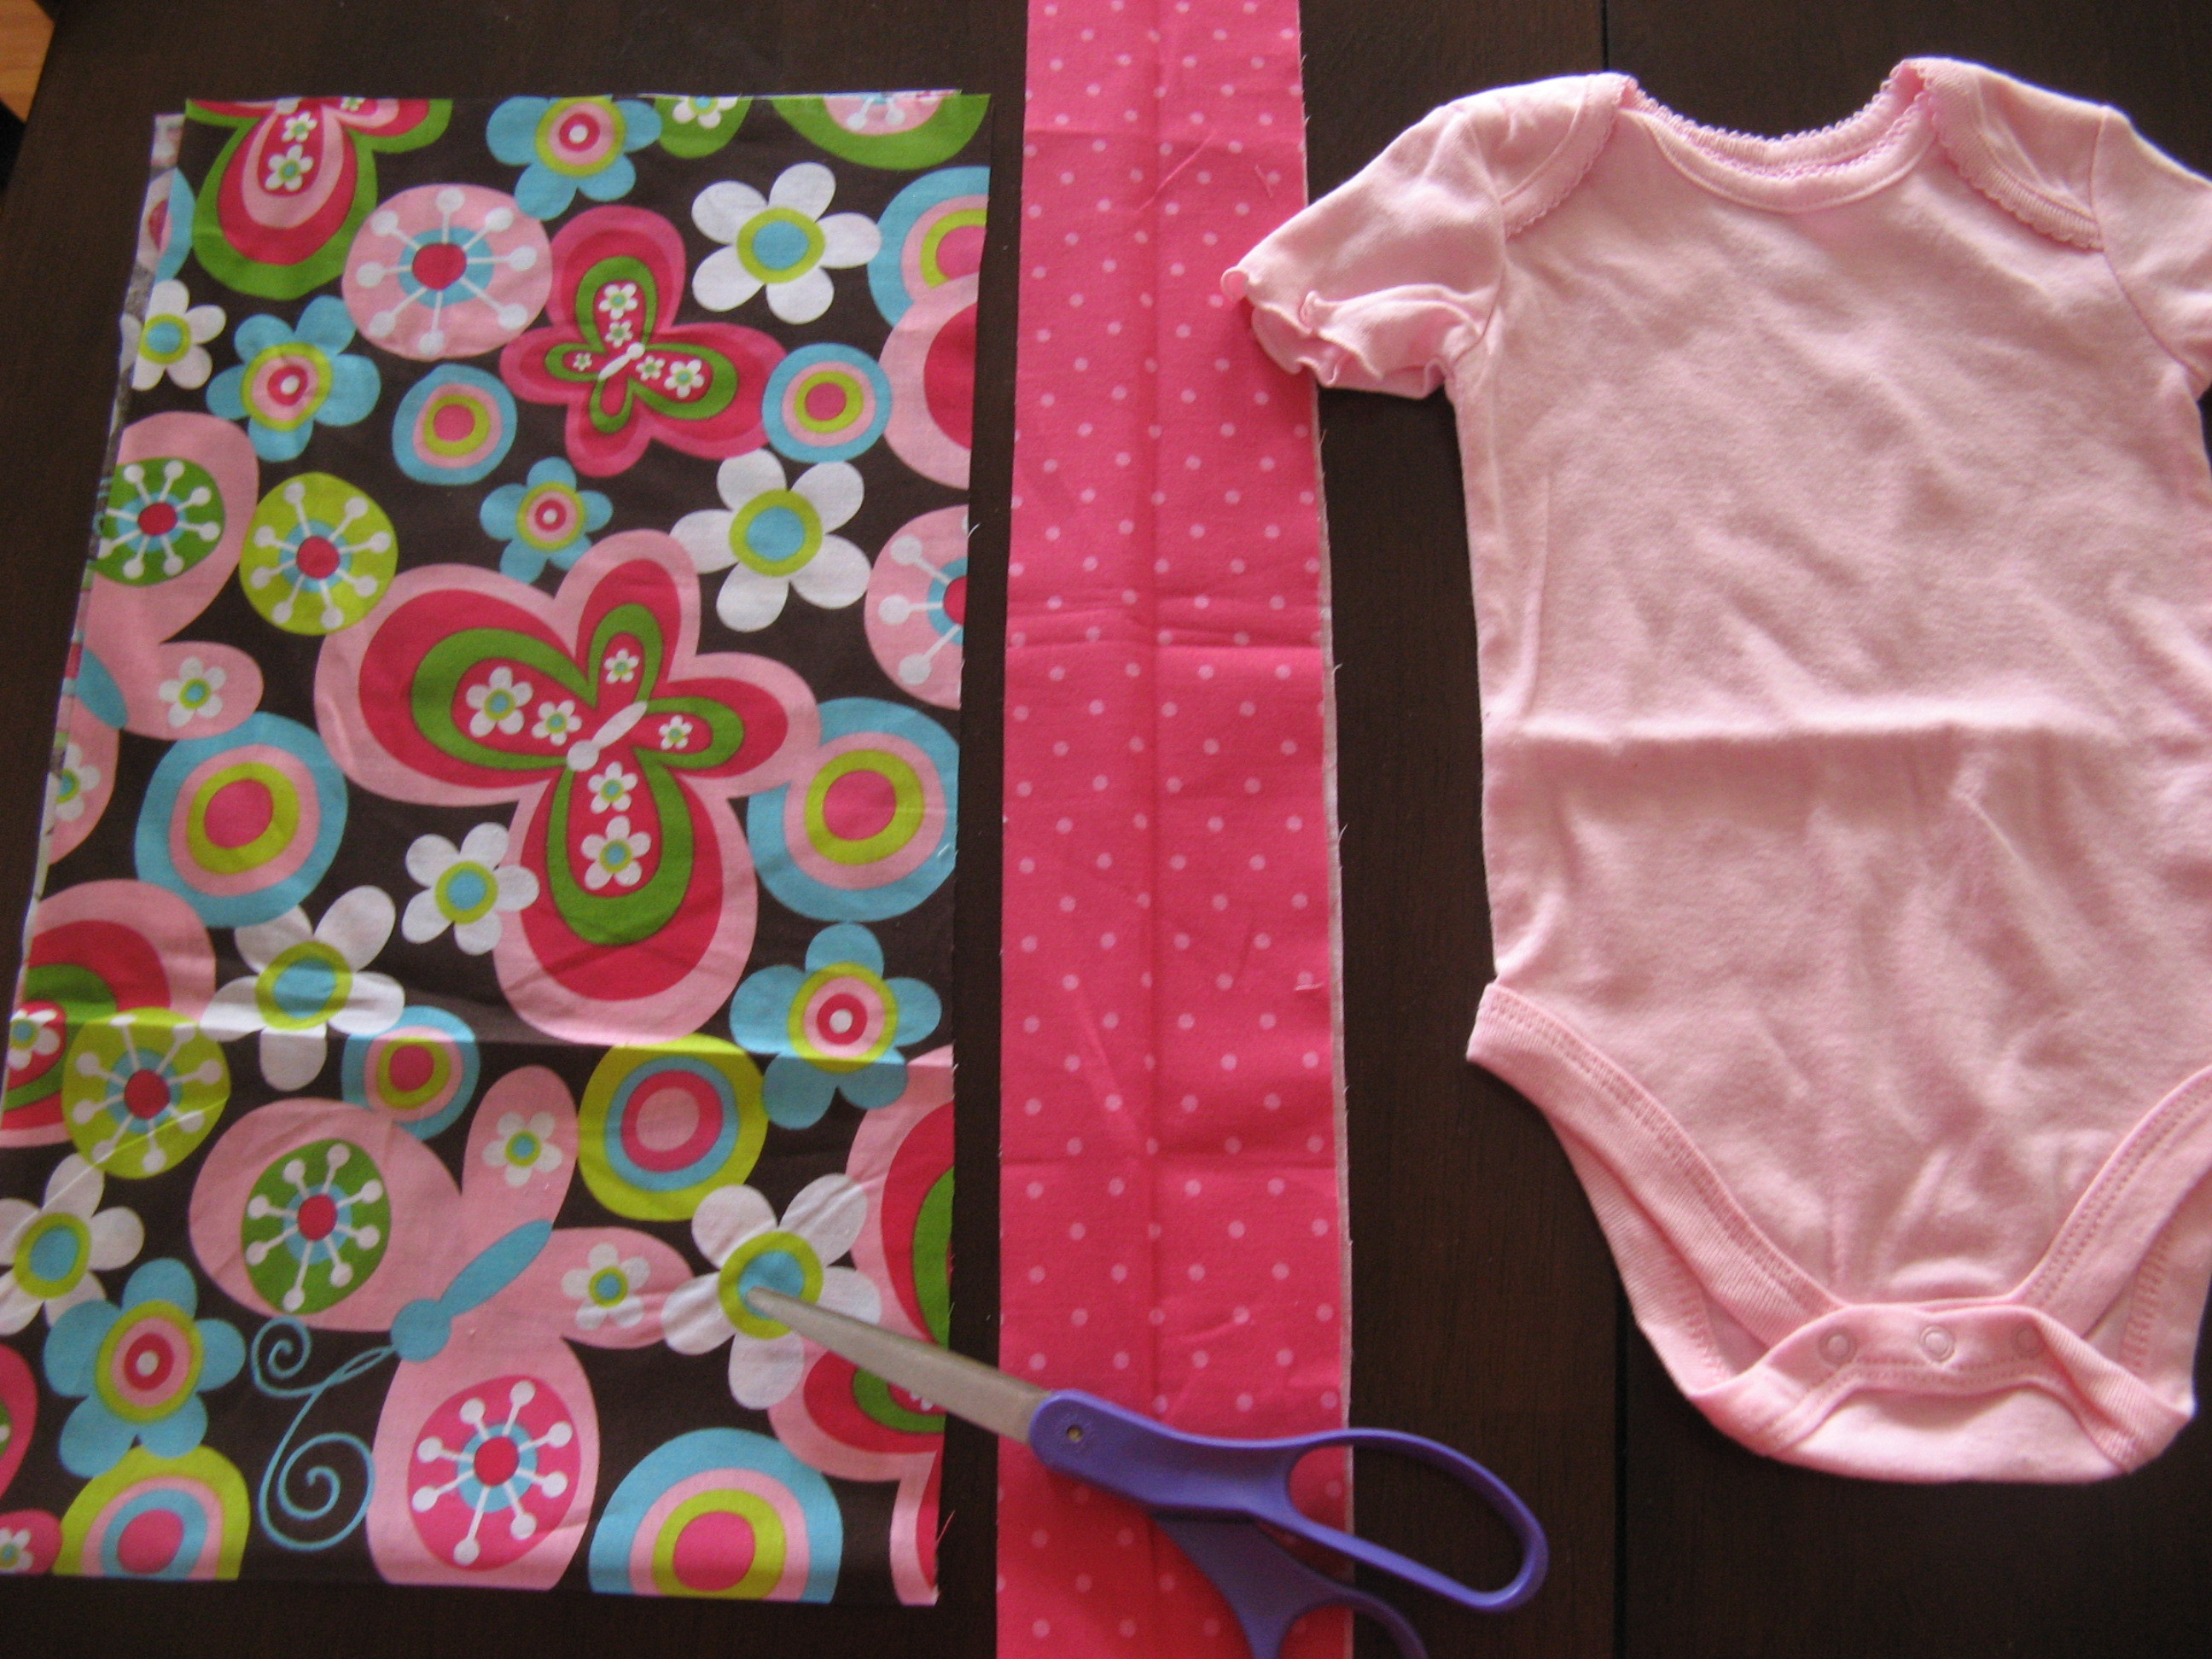 Best ideas about DIY Baby Dresses . Save or Pin DIY baby dress Now.